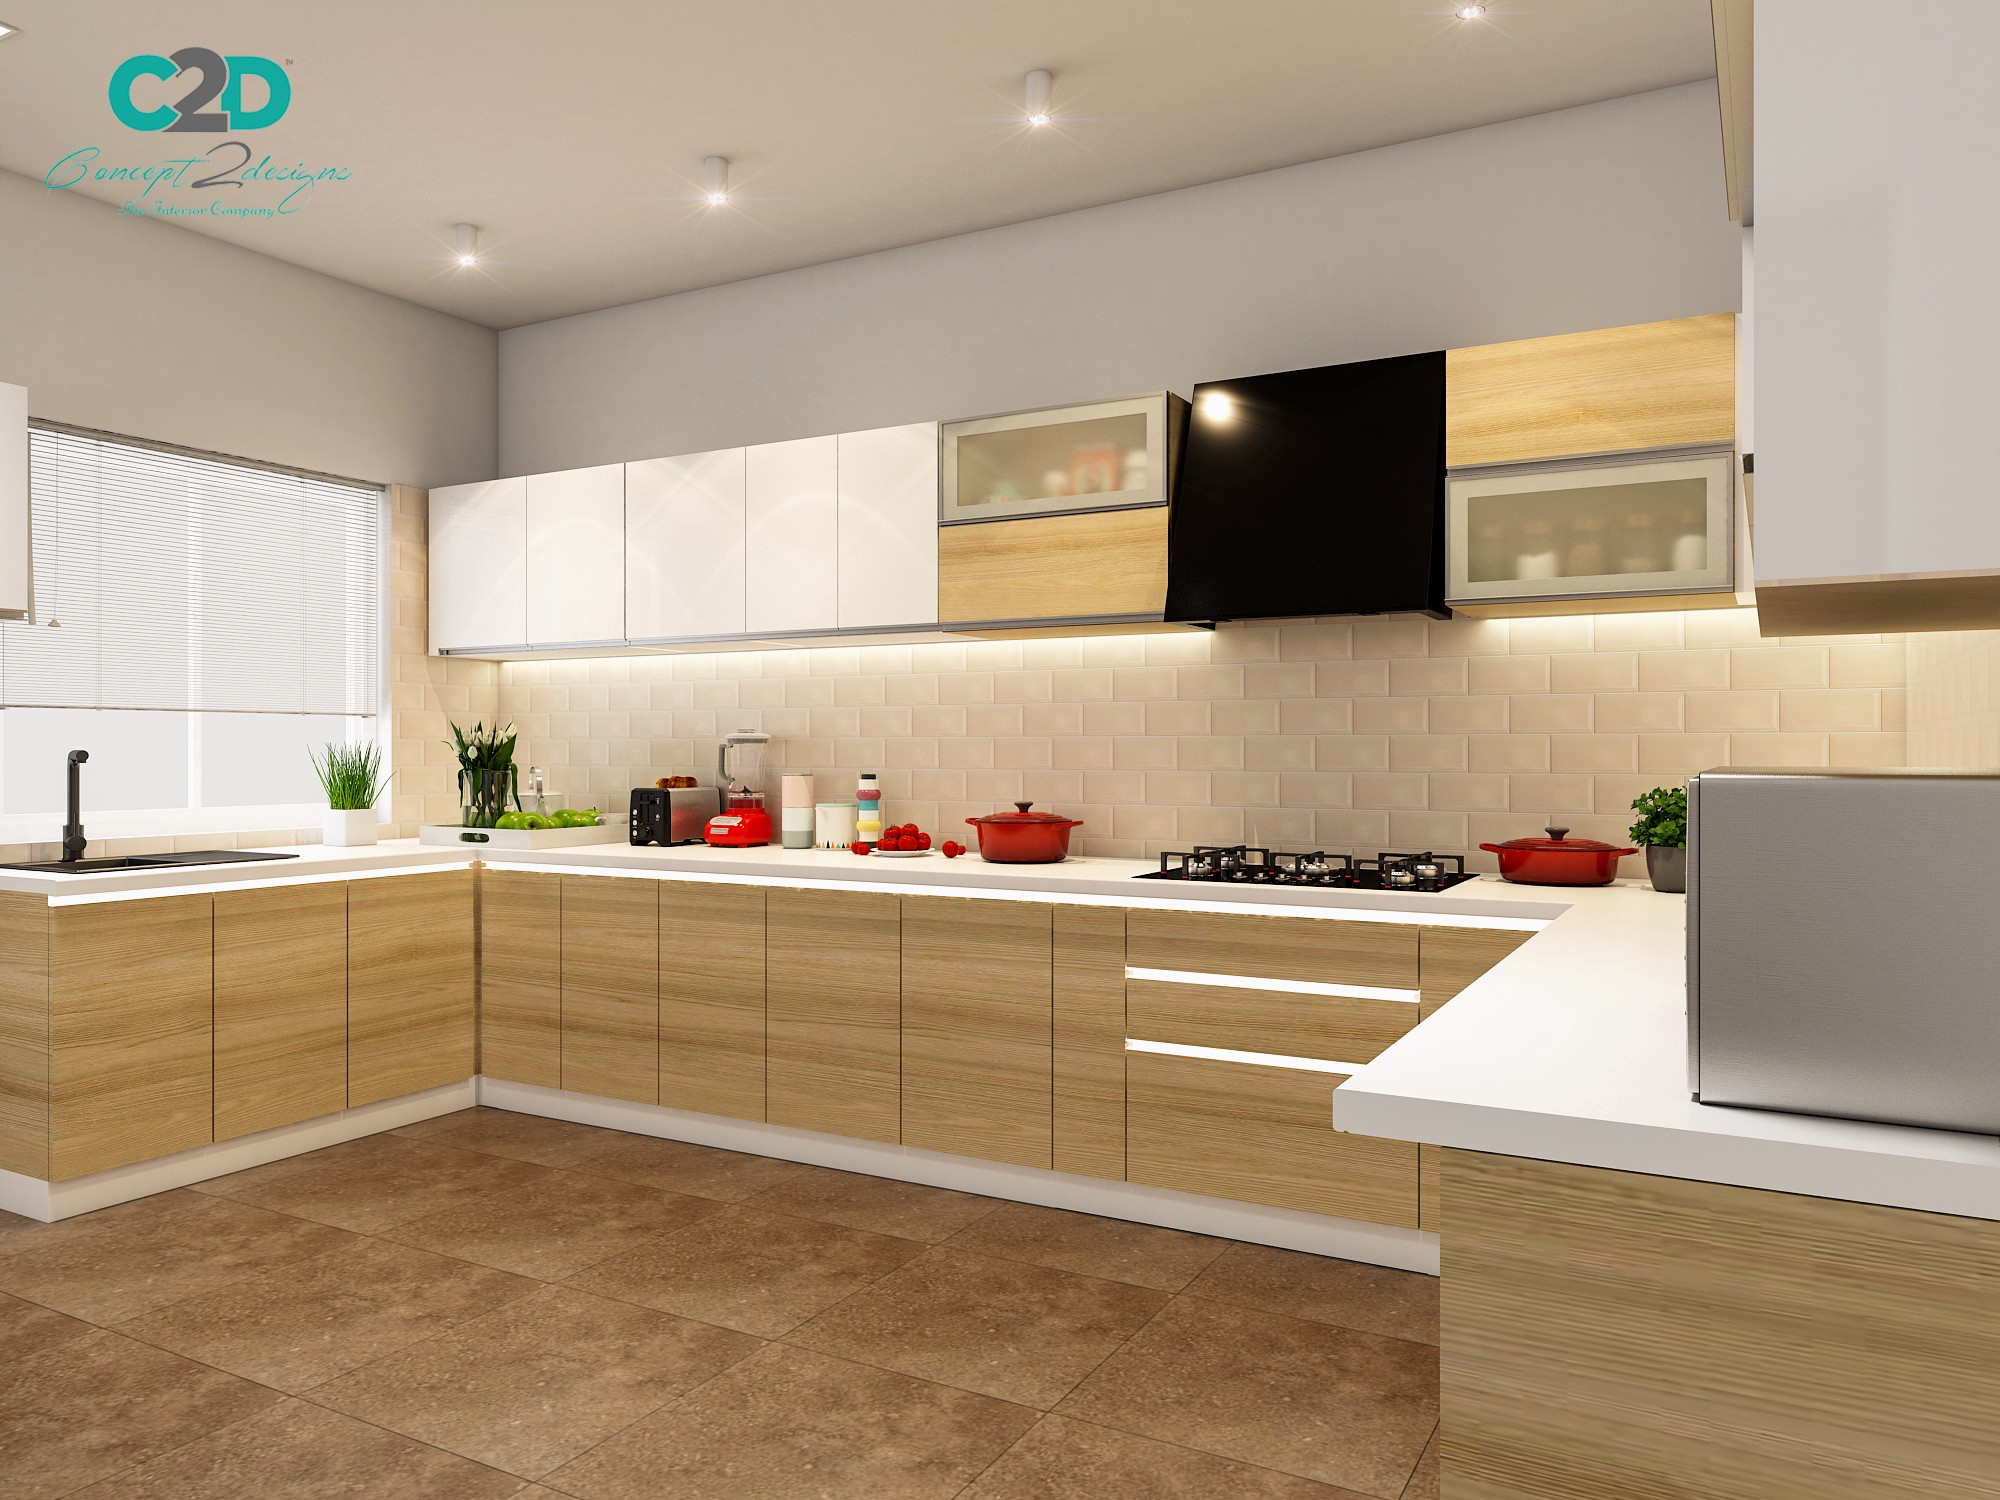 Types Of Laminates For Kitchen Cabinets By Peggo App Medium